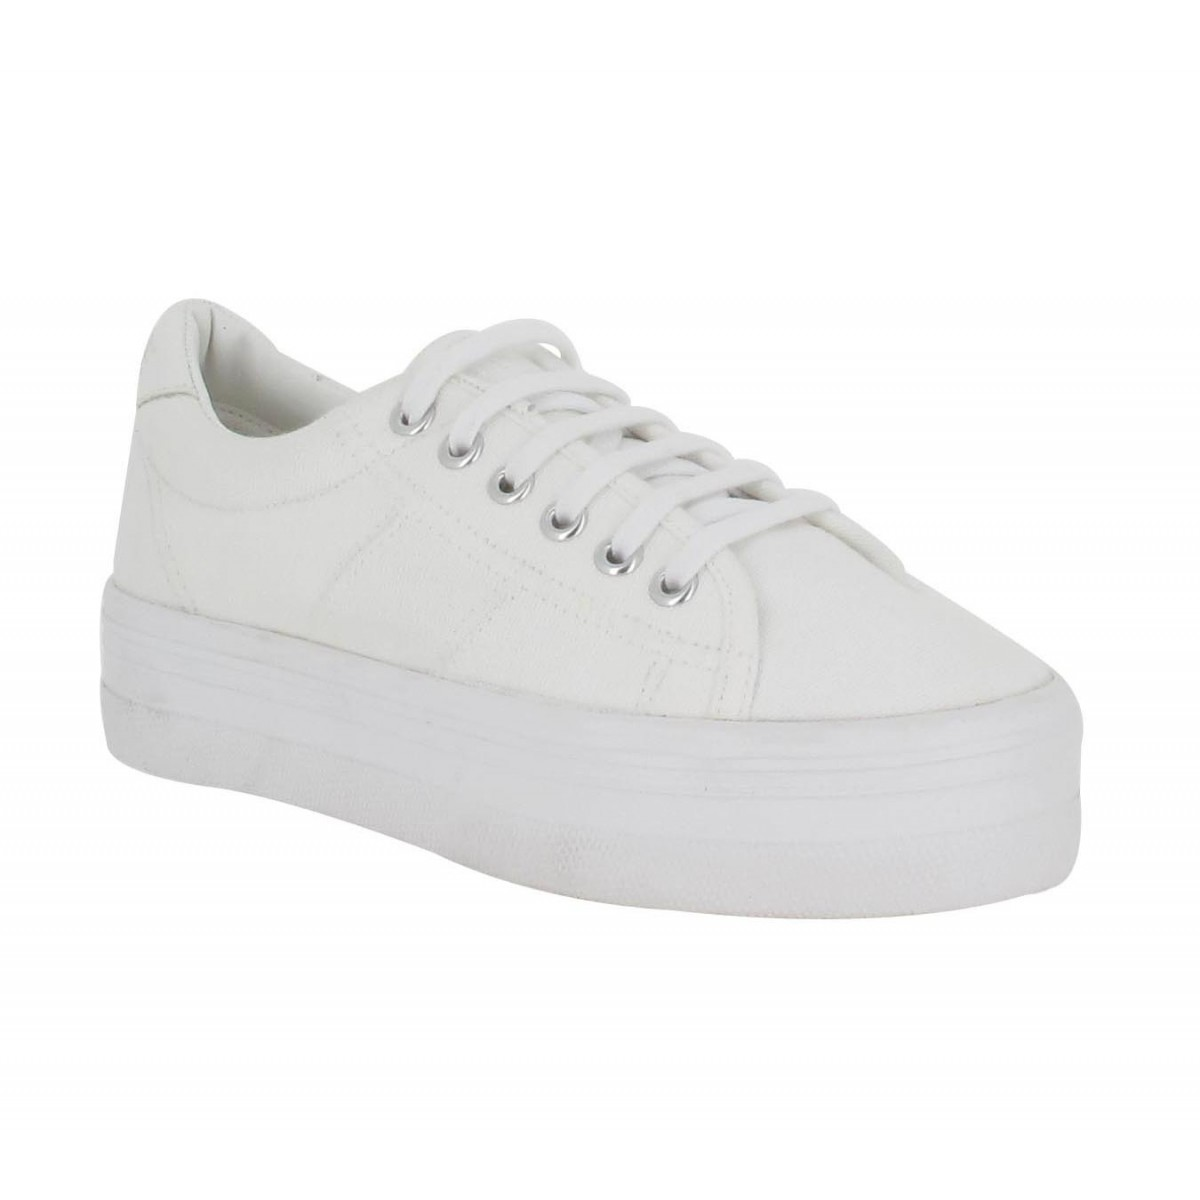 Baskets NO NAME Plato Sneaker toile Femme Blanc